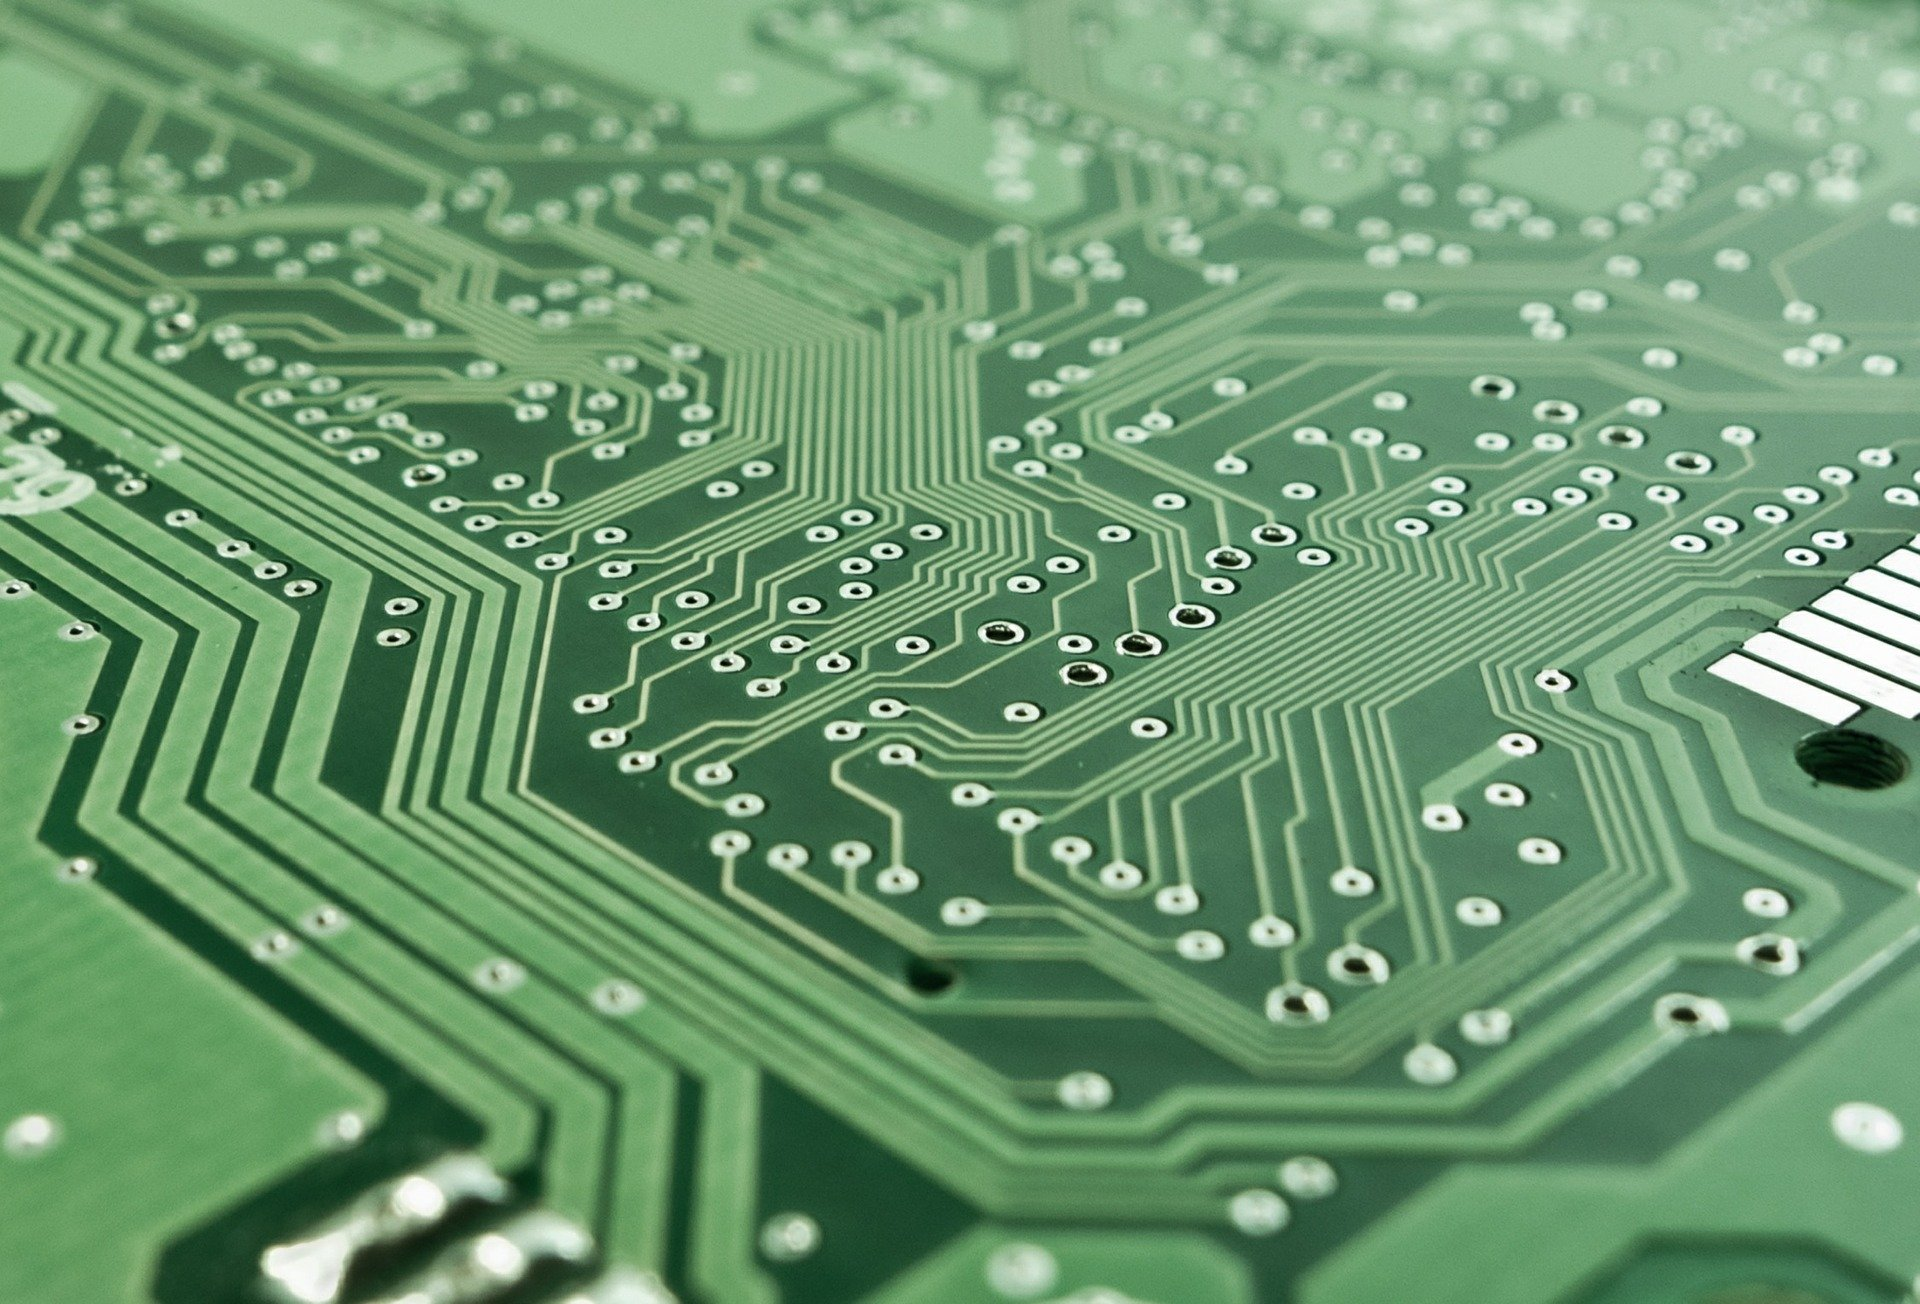 A close-up image of a green electric circuit board